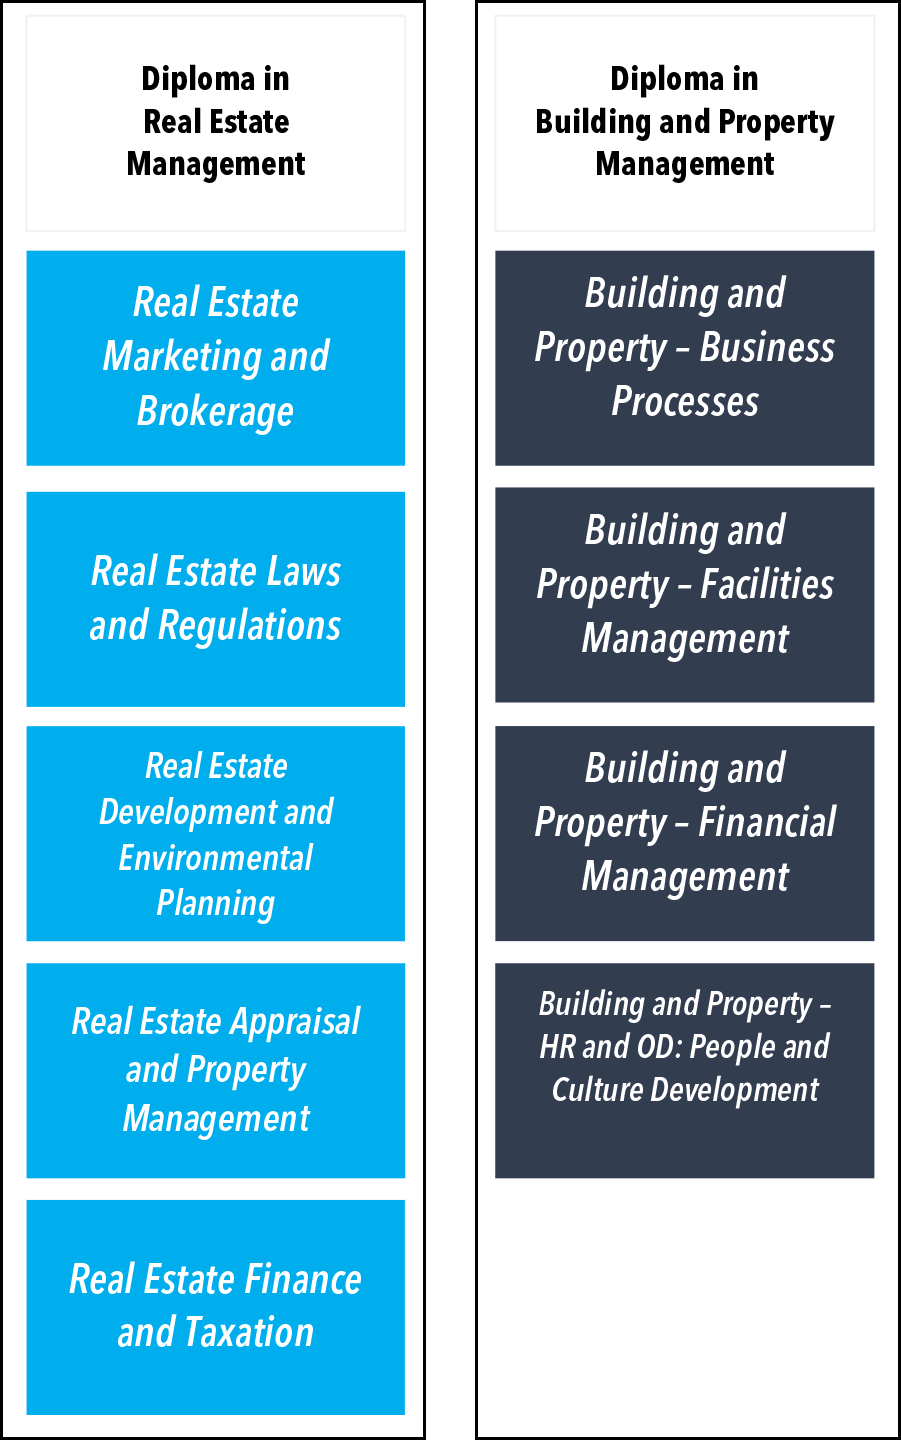 Real Property Management And Development Of : Real estate construction and building management